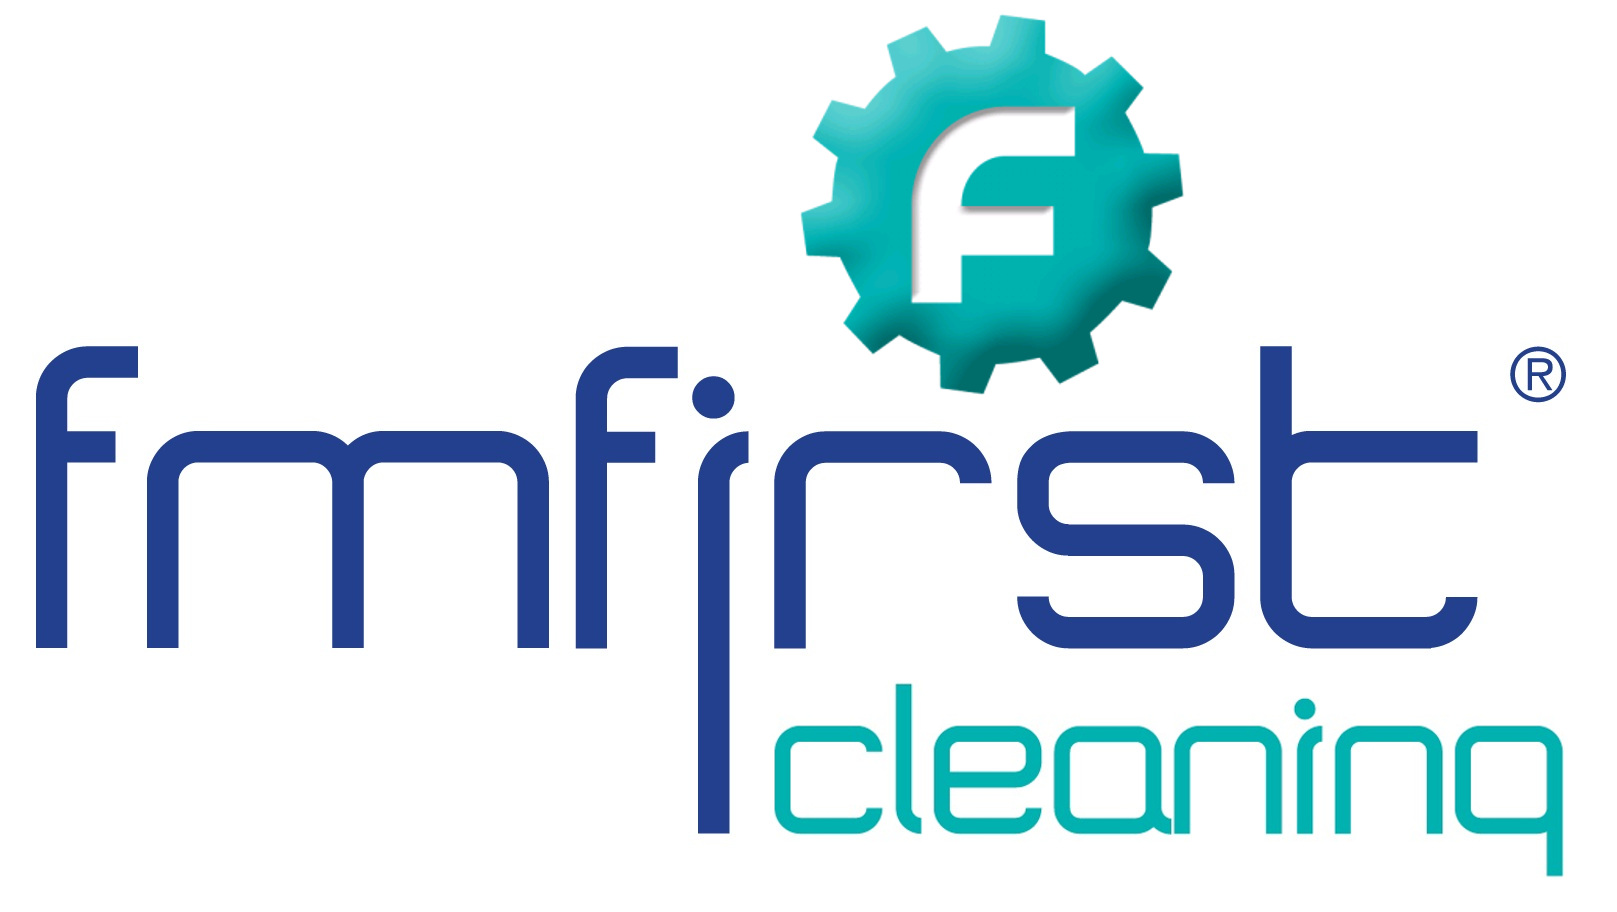 Facilities Management Software - fmfirst cleaning